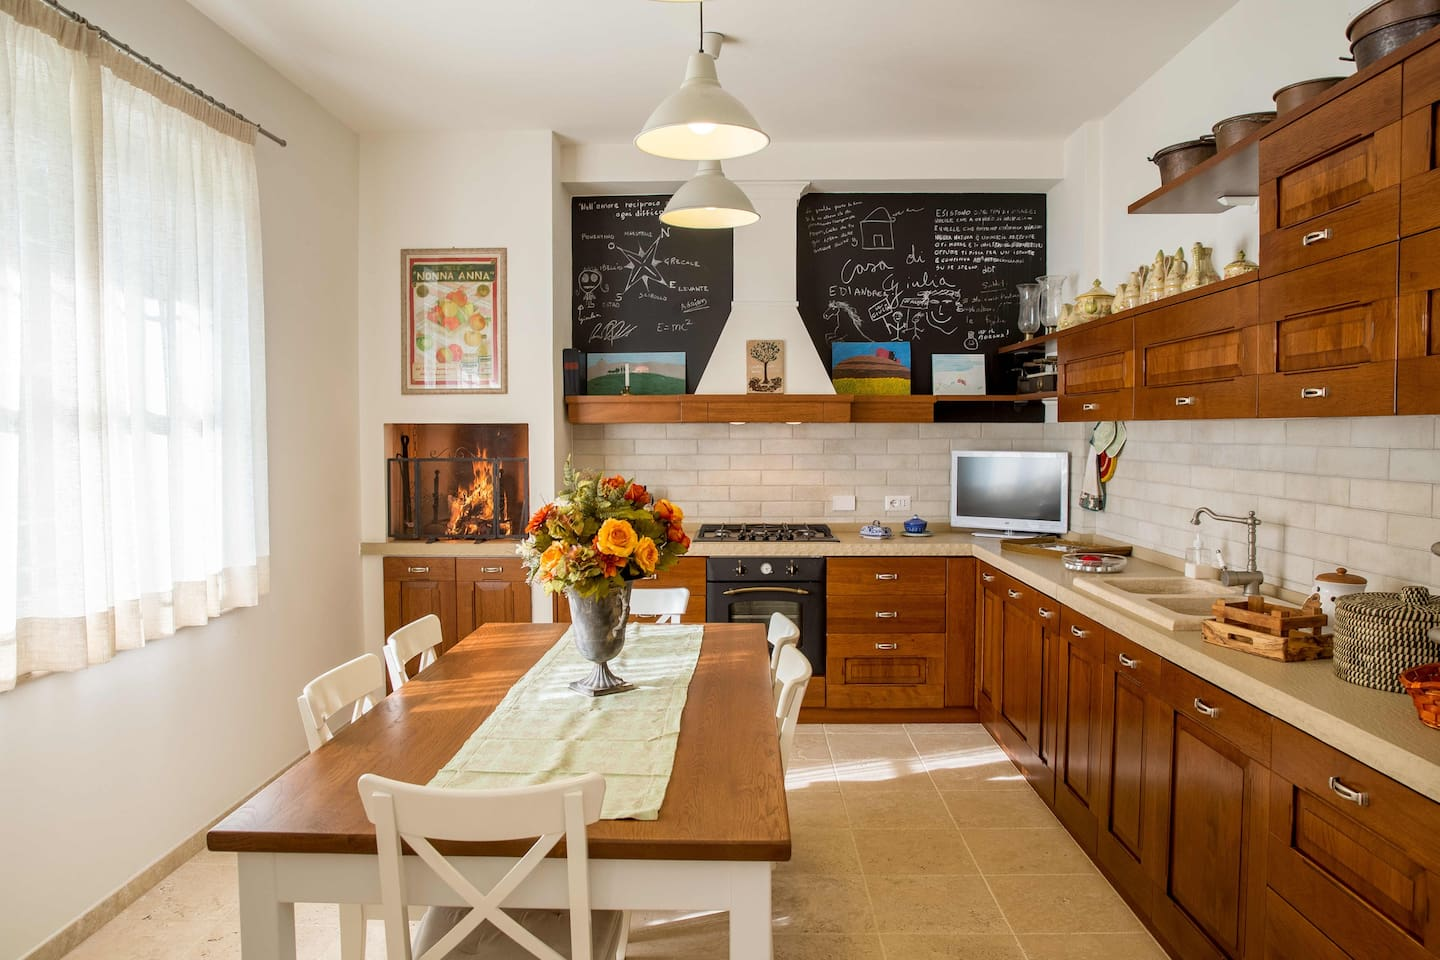 The spacious kitchen with the indoor barbecue!